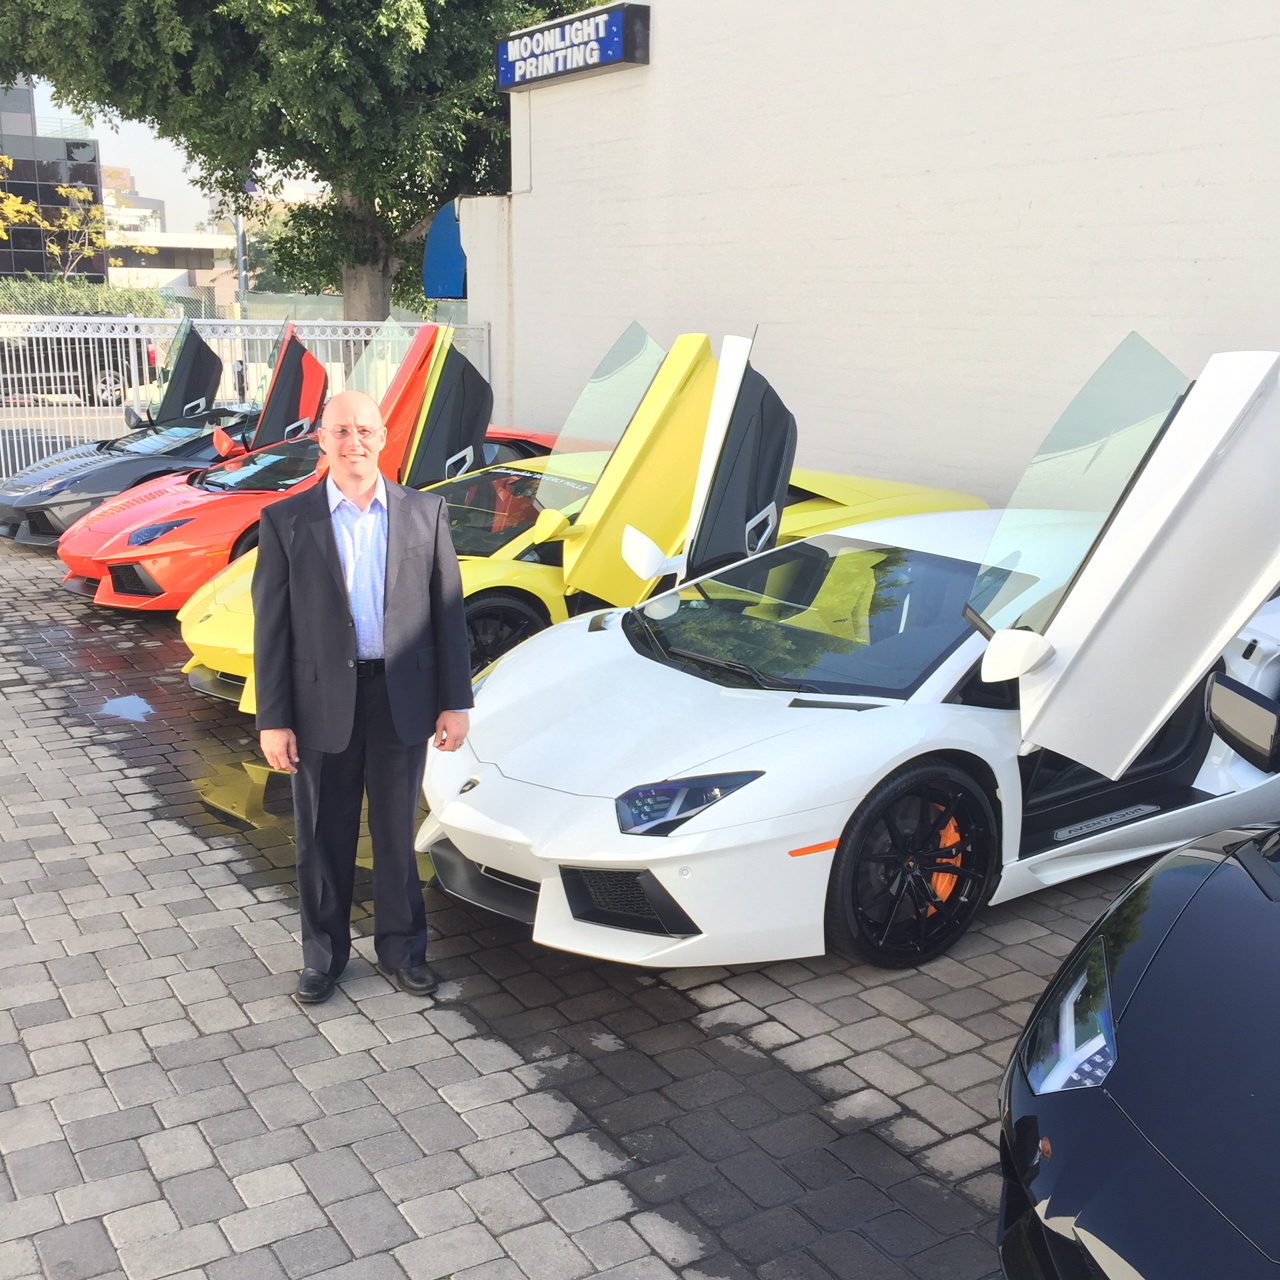 Lamborghini Beverly Hills Vrooms To Elite Thermal Club Racegrounds February 1 With Premier Vip Event